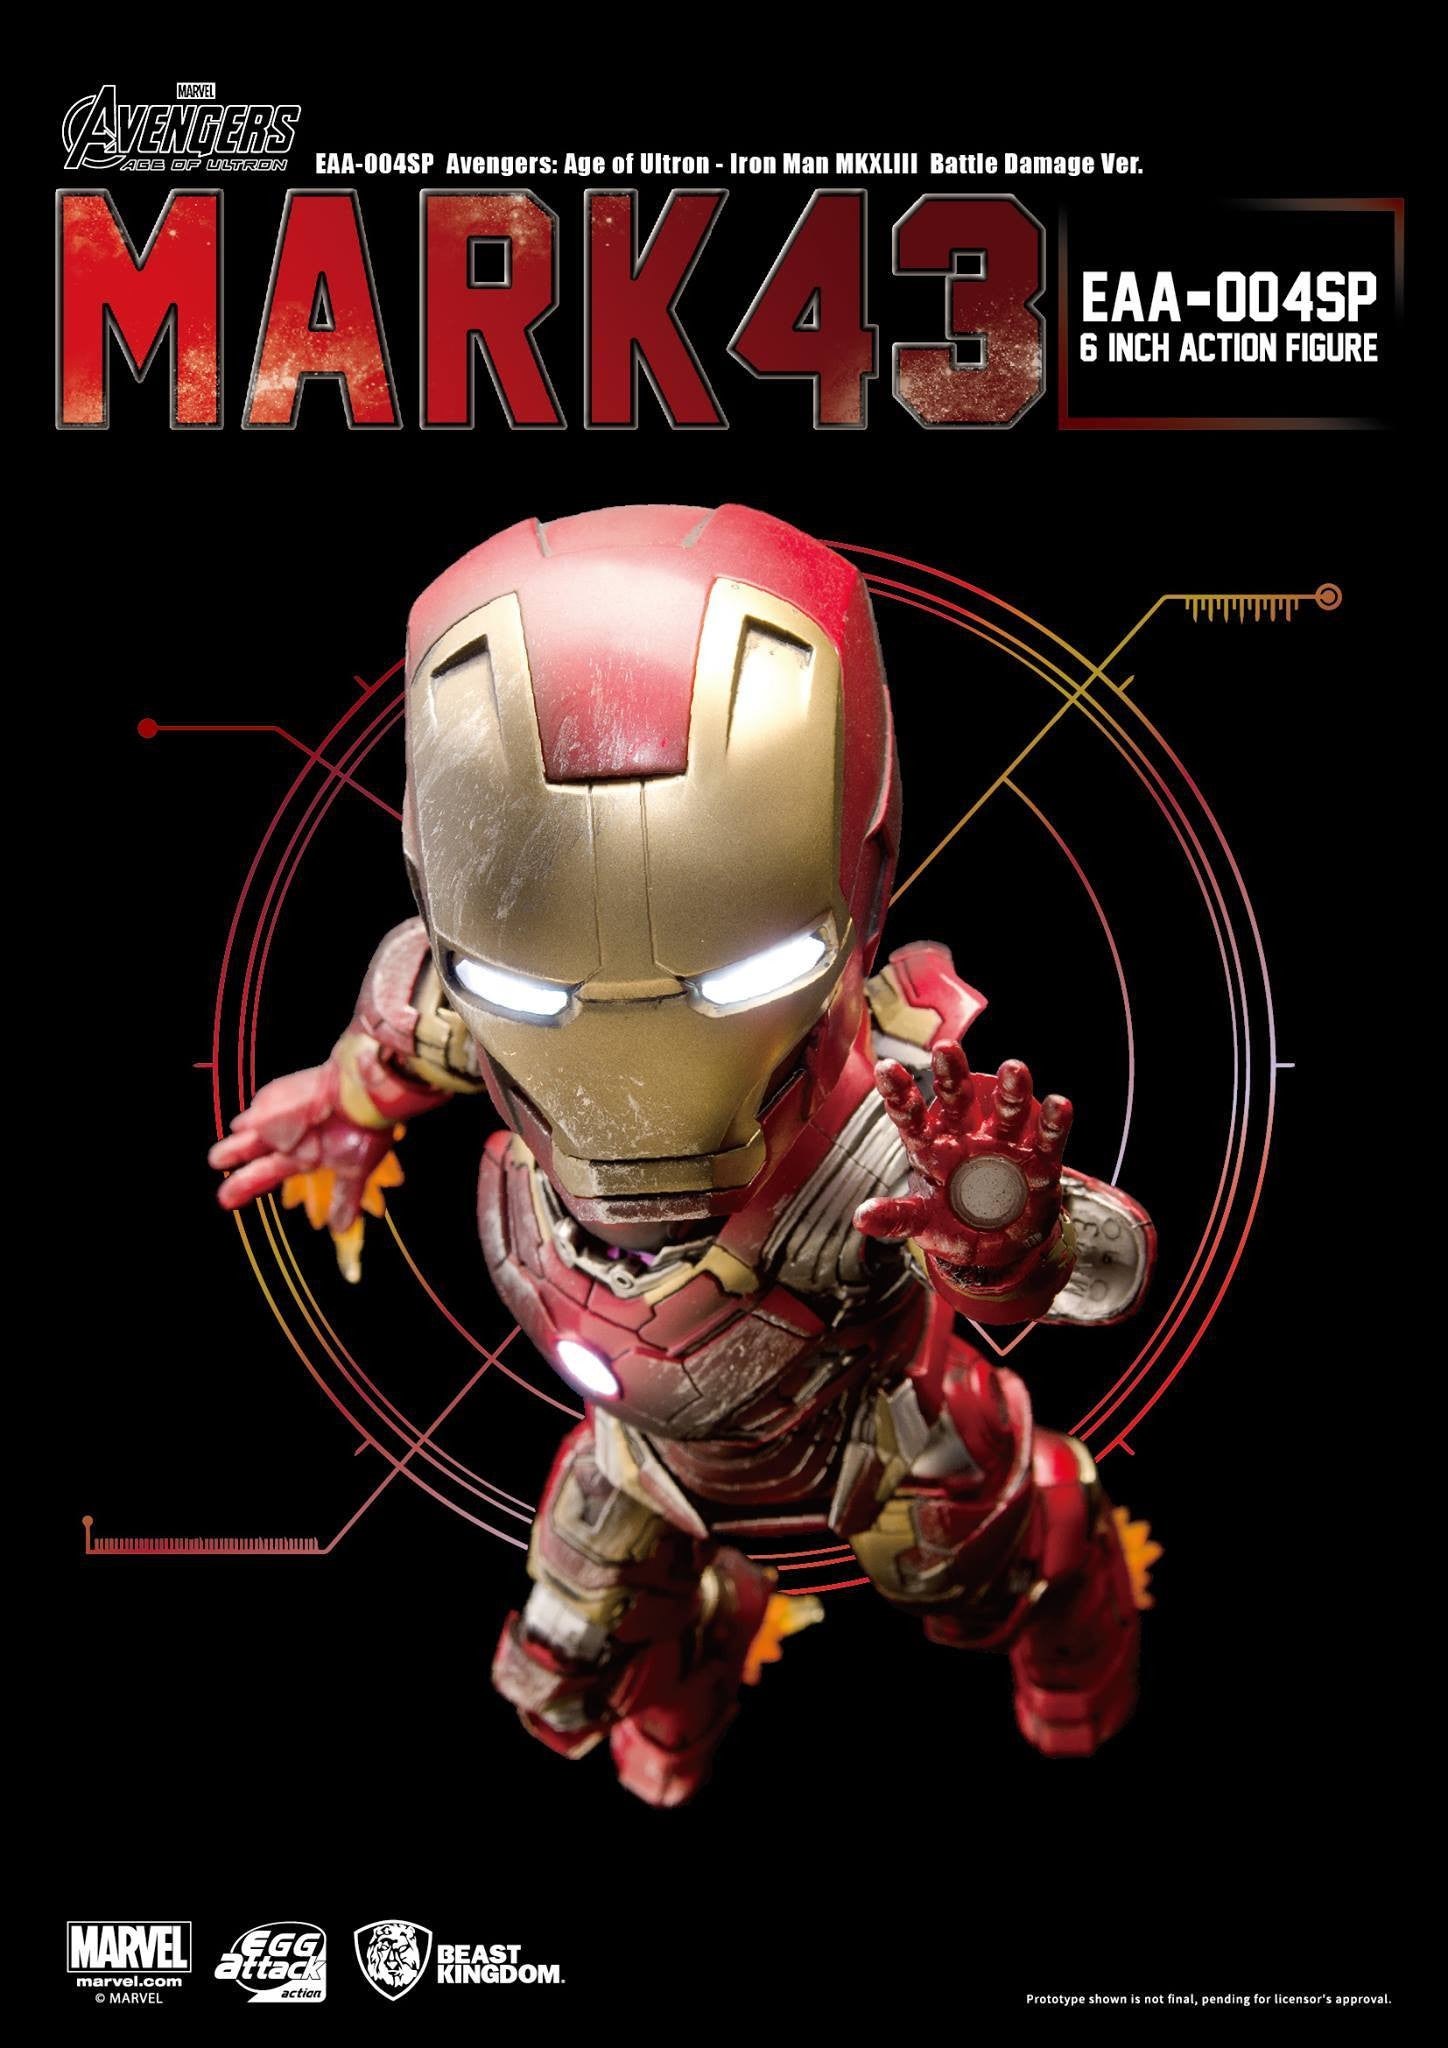 Egg Attack Action - EAA-004SP - Avengers: Age of Ultron - Iron Man Mark 43 (XLIII) (Battle Damage Edition) - Marvelous Toys - 3